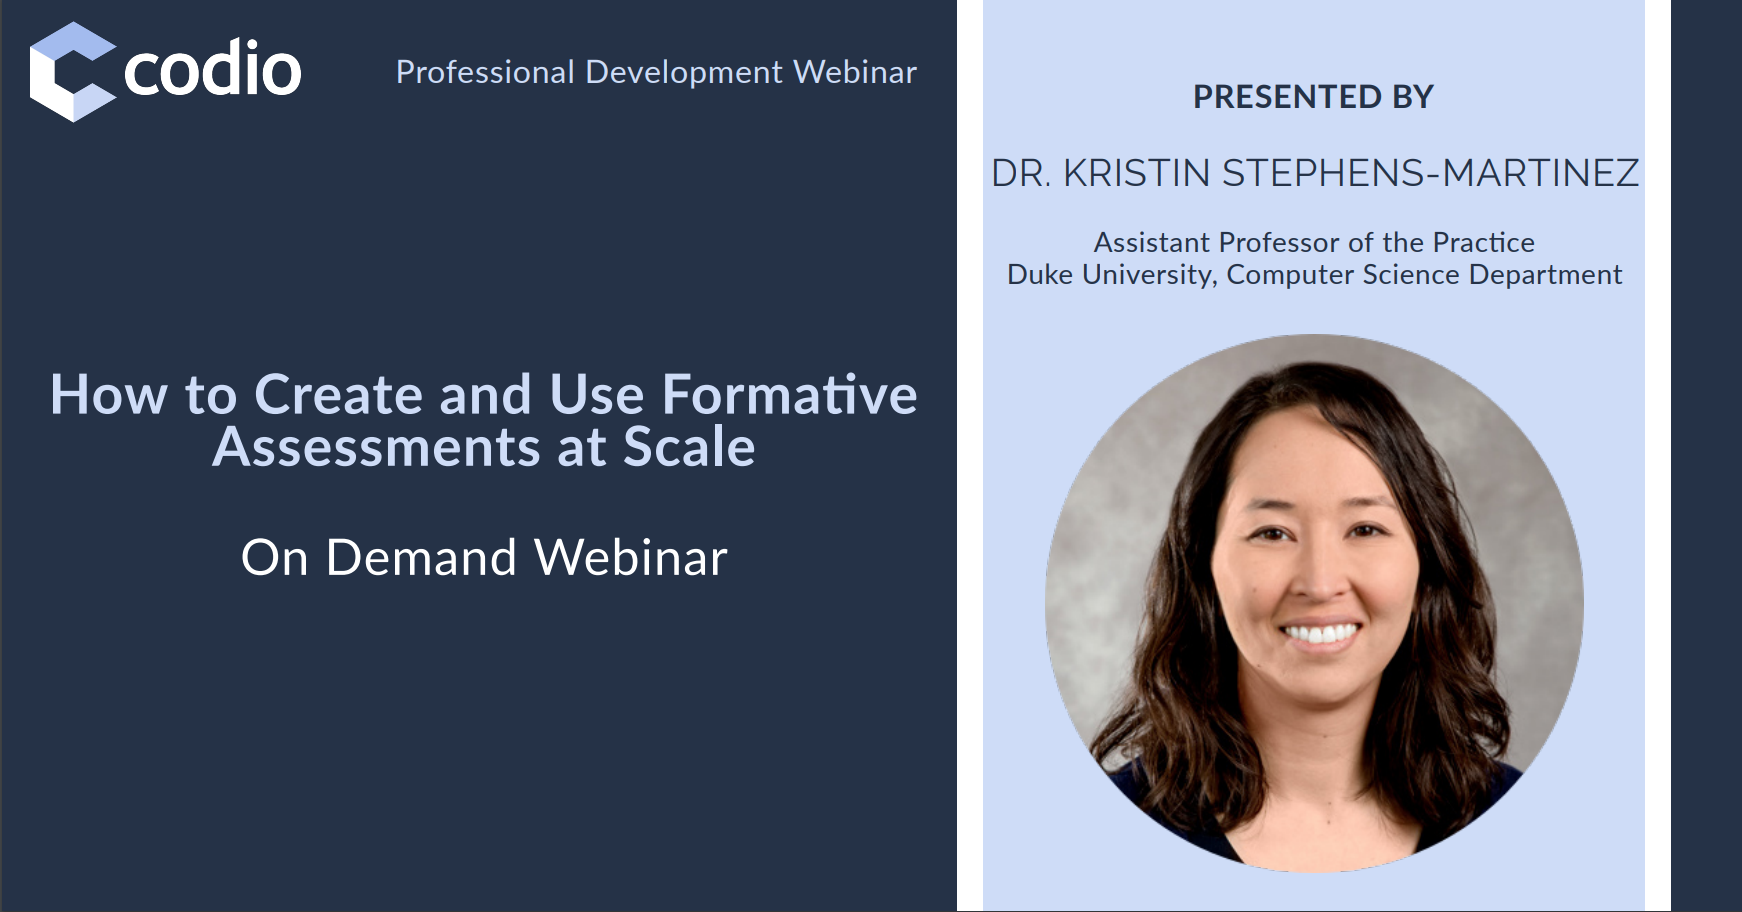 How to Create and Use Formative Assessments at Scale